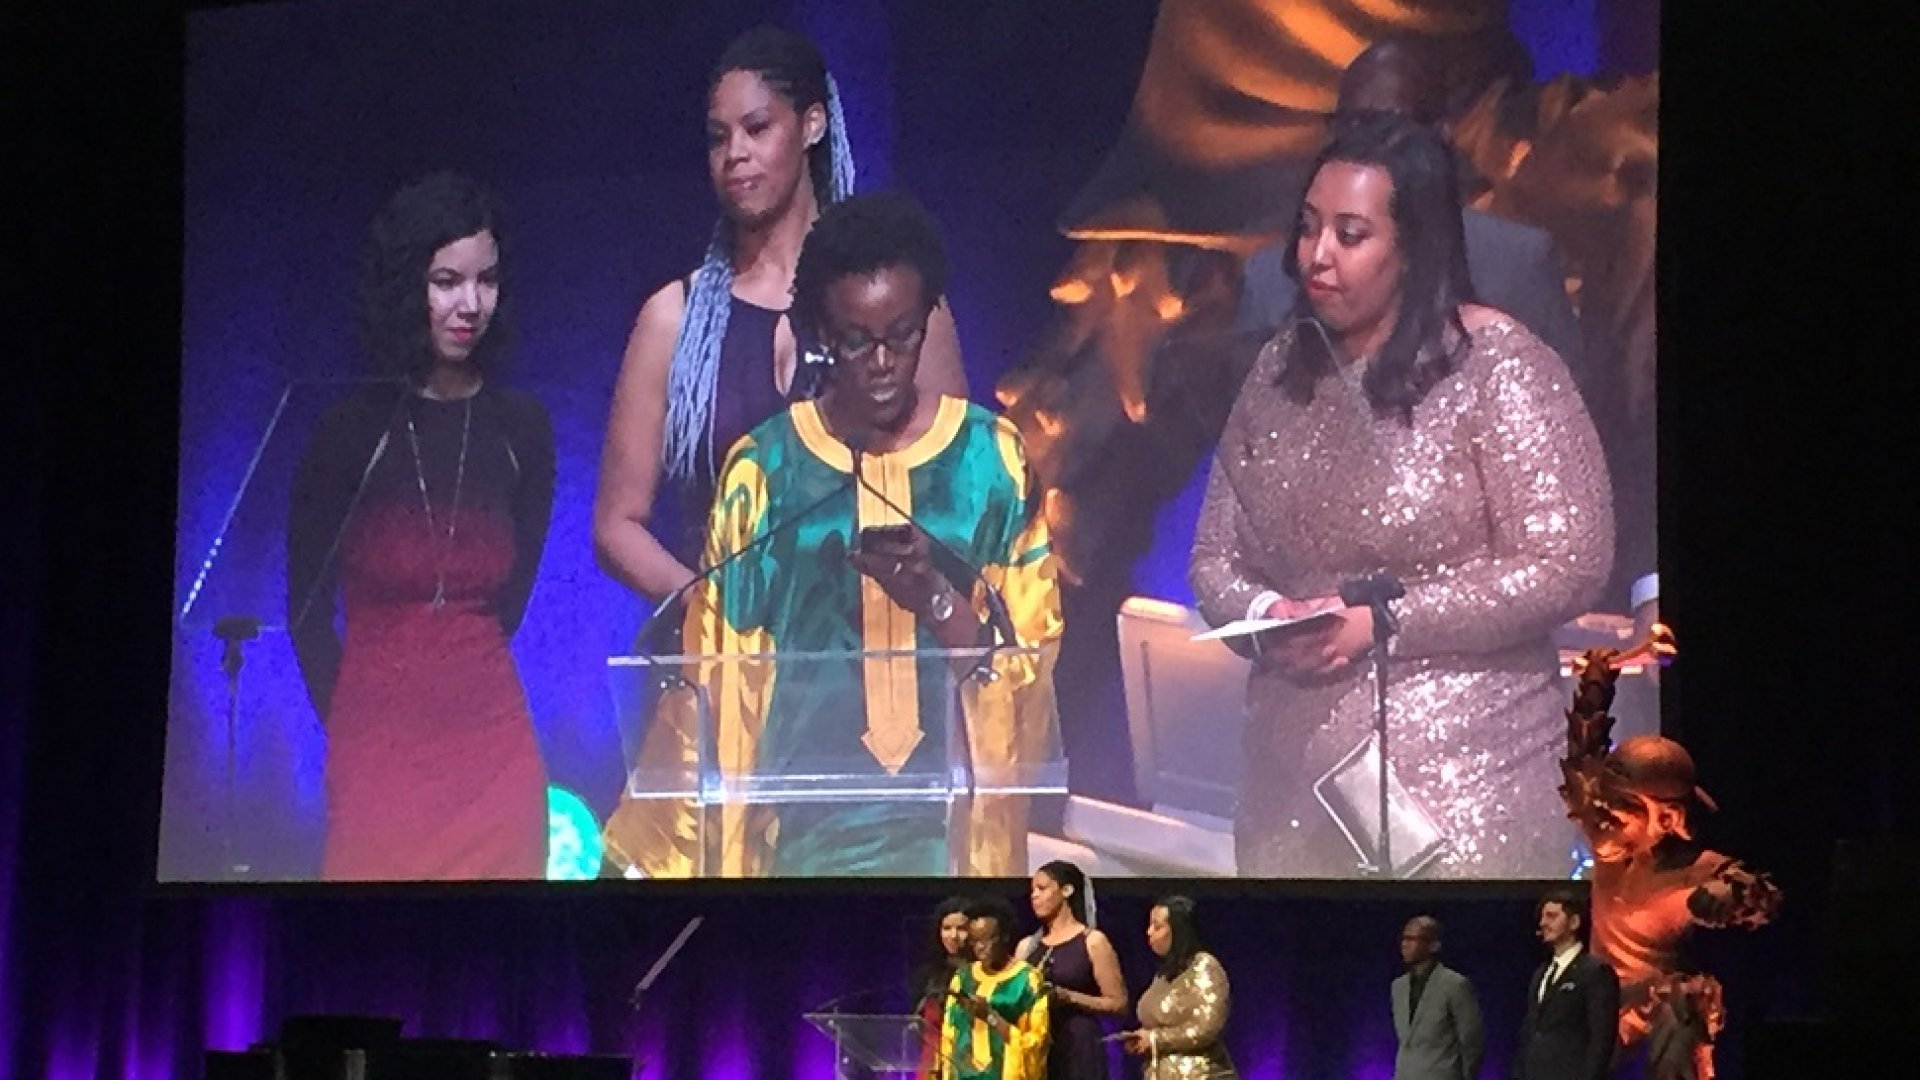 Slack employees Megan Anctil, Erica Baker, Kiné Camara, Duretti Hirpa accept the Fastest Rising Startup award for Slack at the 2016 Crunchies awards on Feb. 8, 2016.